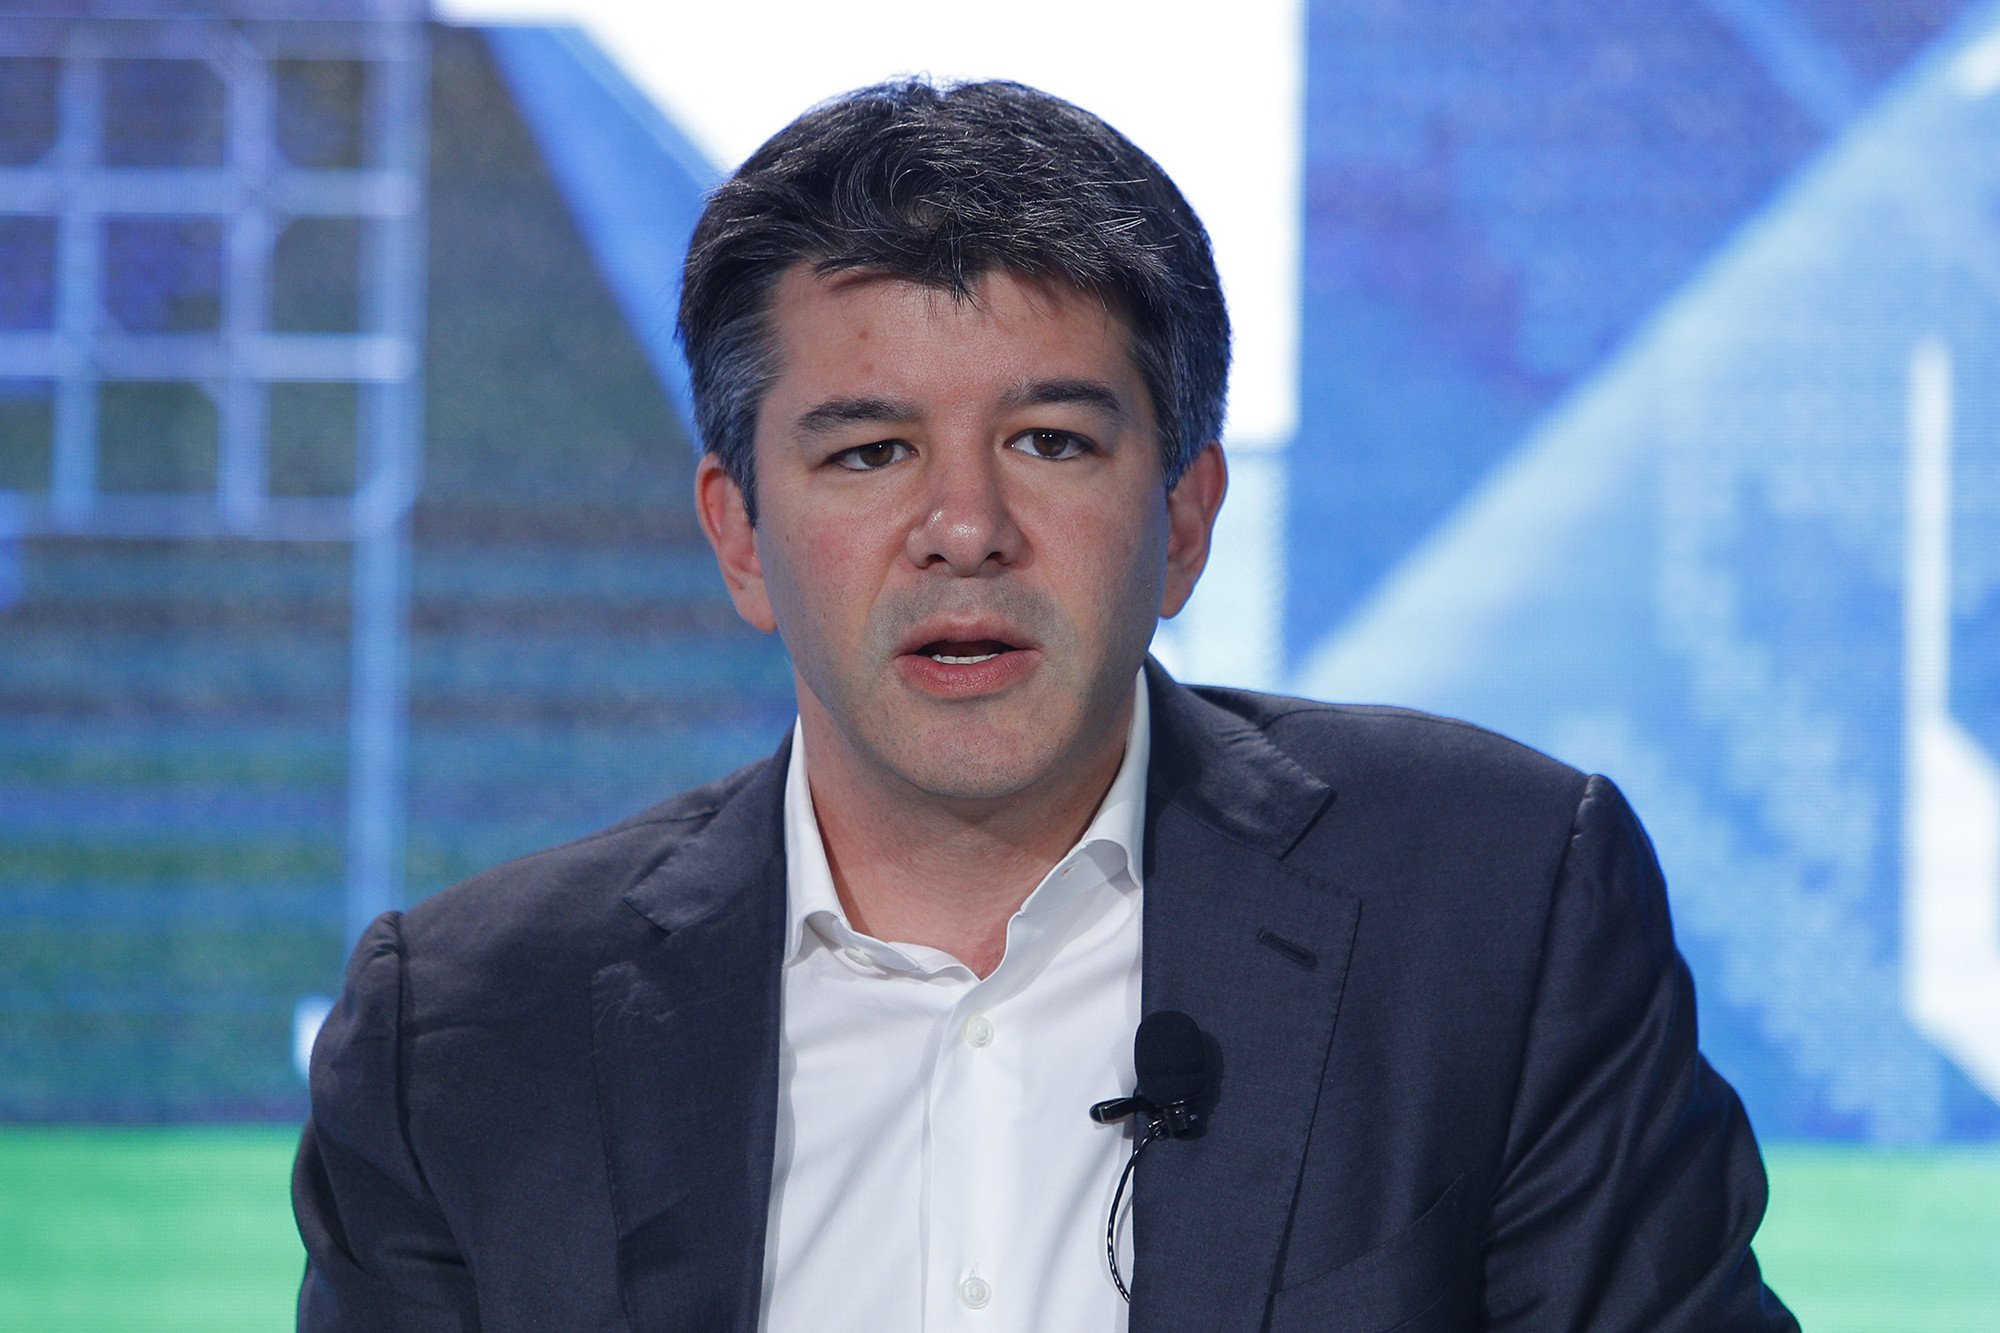 Kalanick's demeanor on stand central to Uber trial